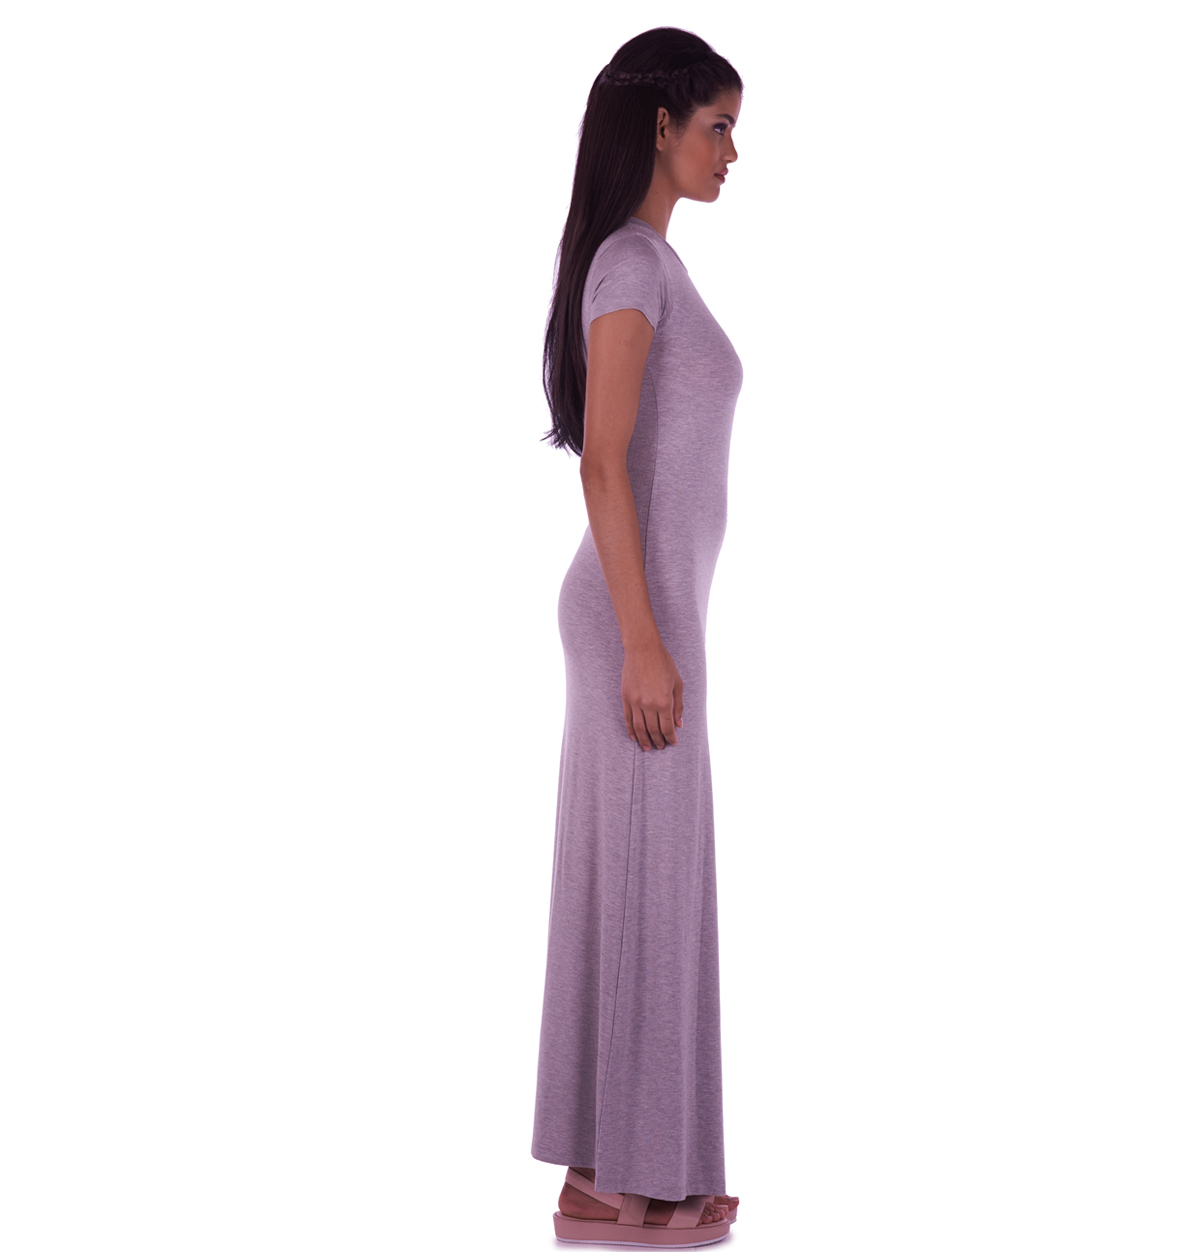 S3__LONG_DRESS_GREY_SIDE.jpg